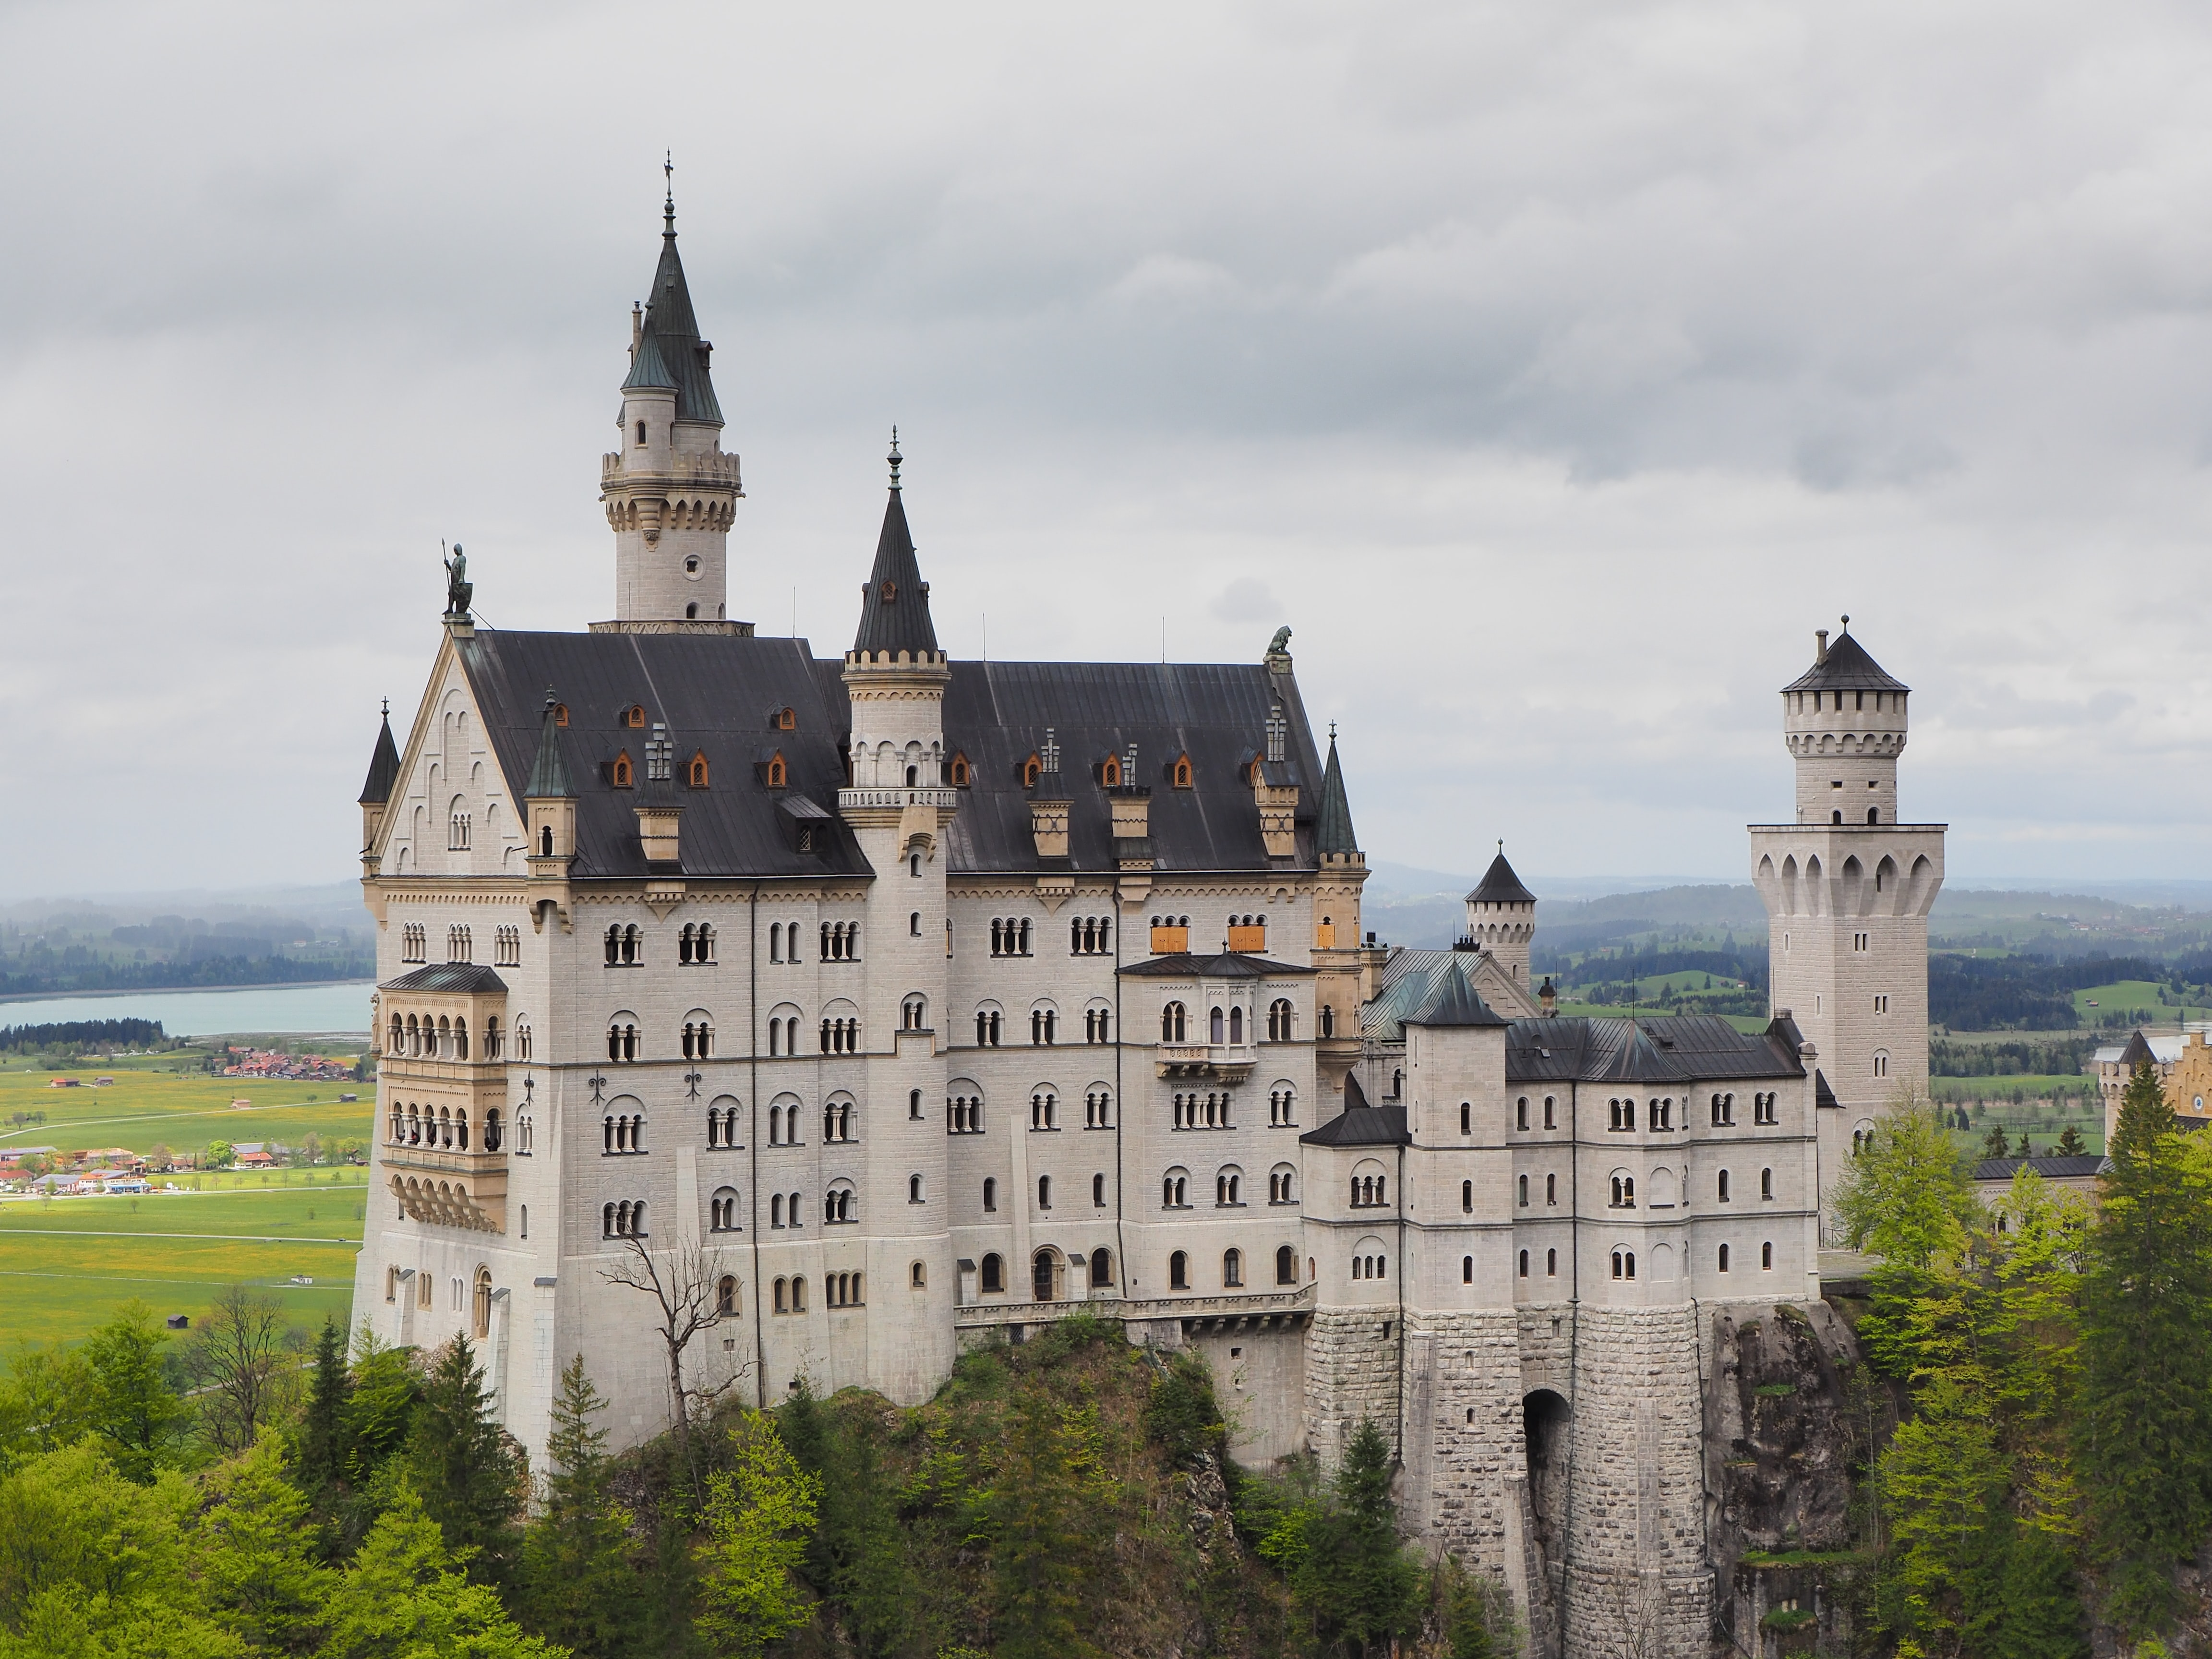 Tour the Fairy tale castle of Neuschwanstein in Bavaria, Germany, Romantic Things to do in Europe